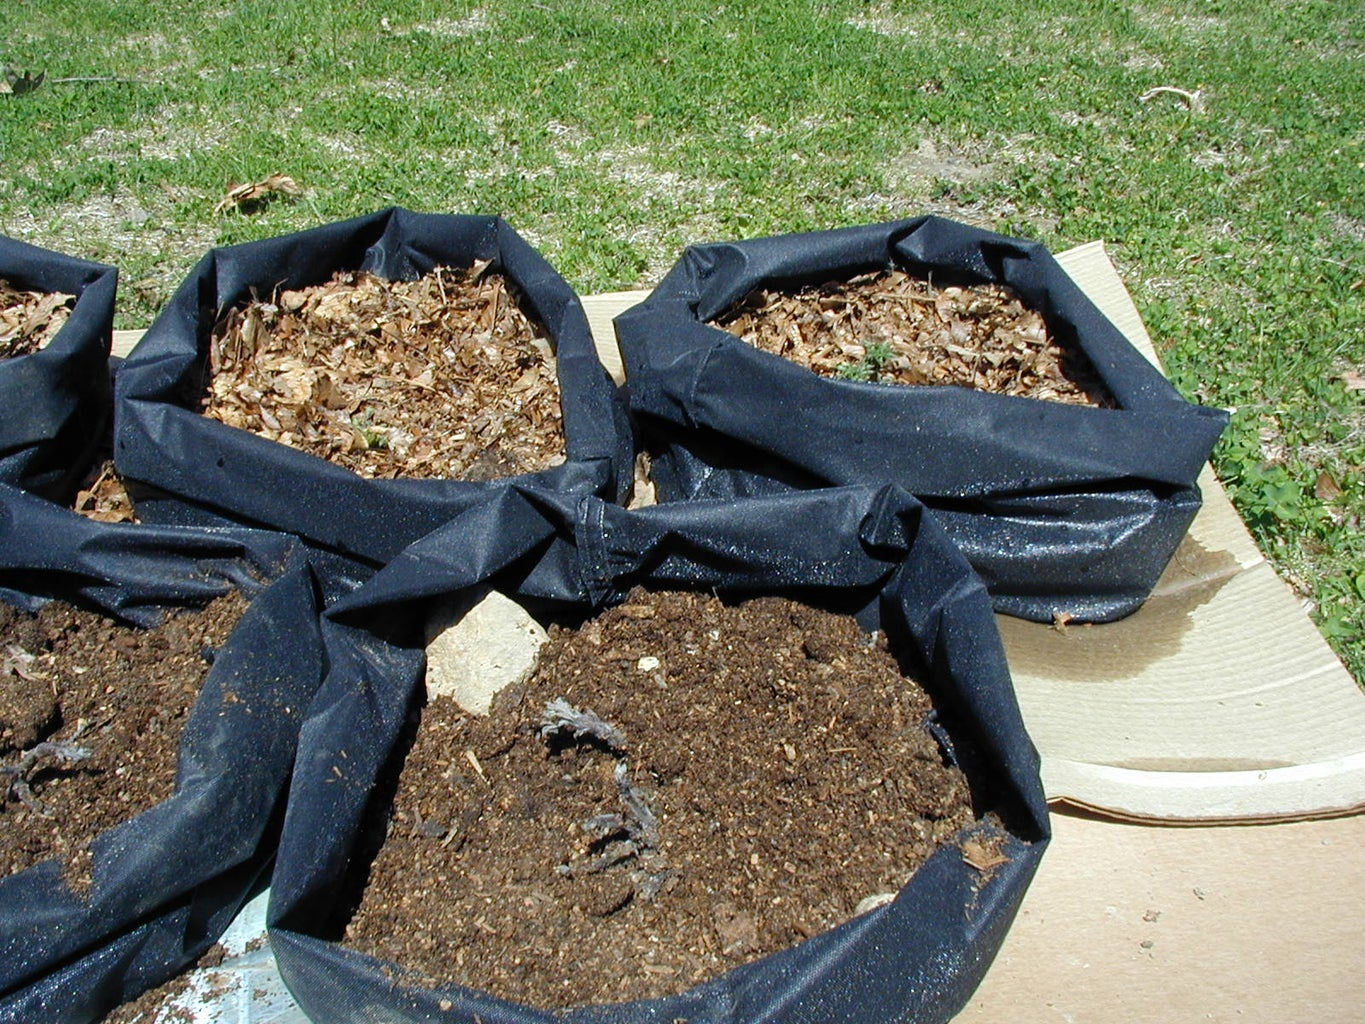 Planting Taters in Totes: